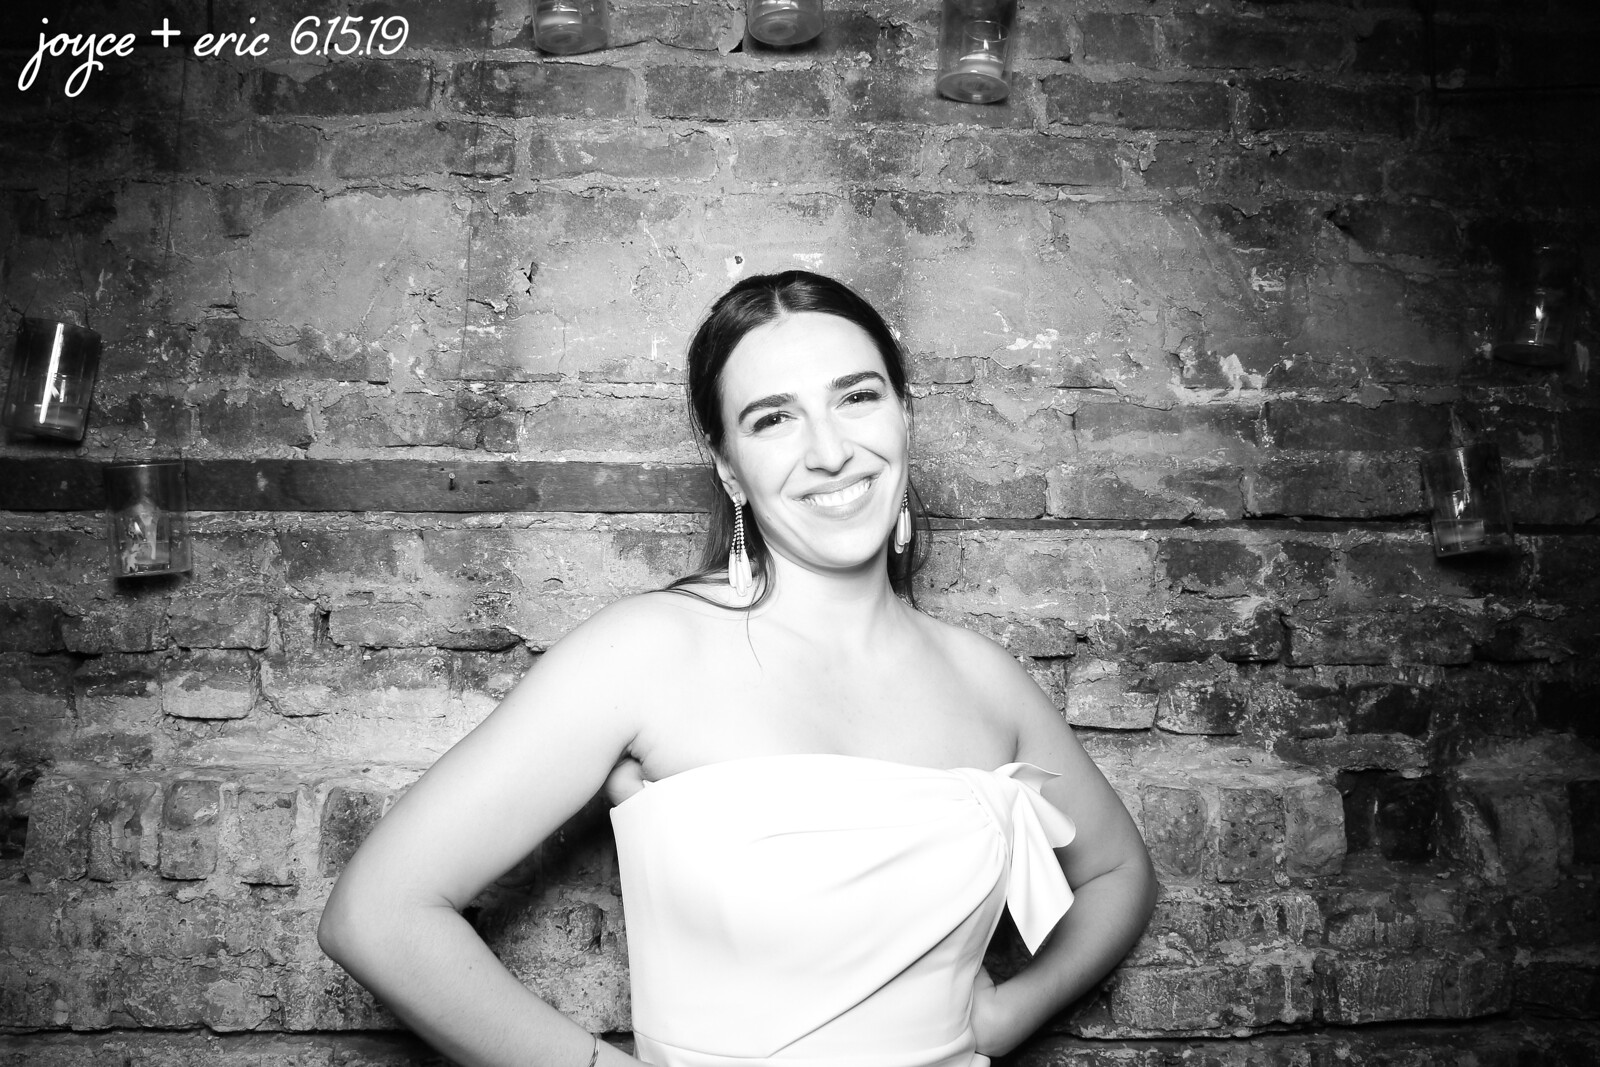 Chicago_Vintage_Wedding_Photobooth_New_Leaf_09.jpg